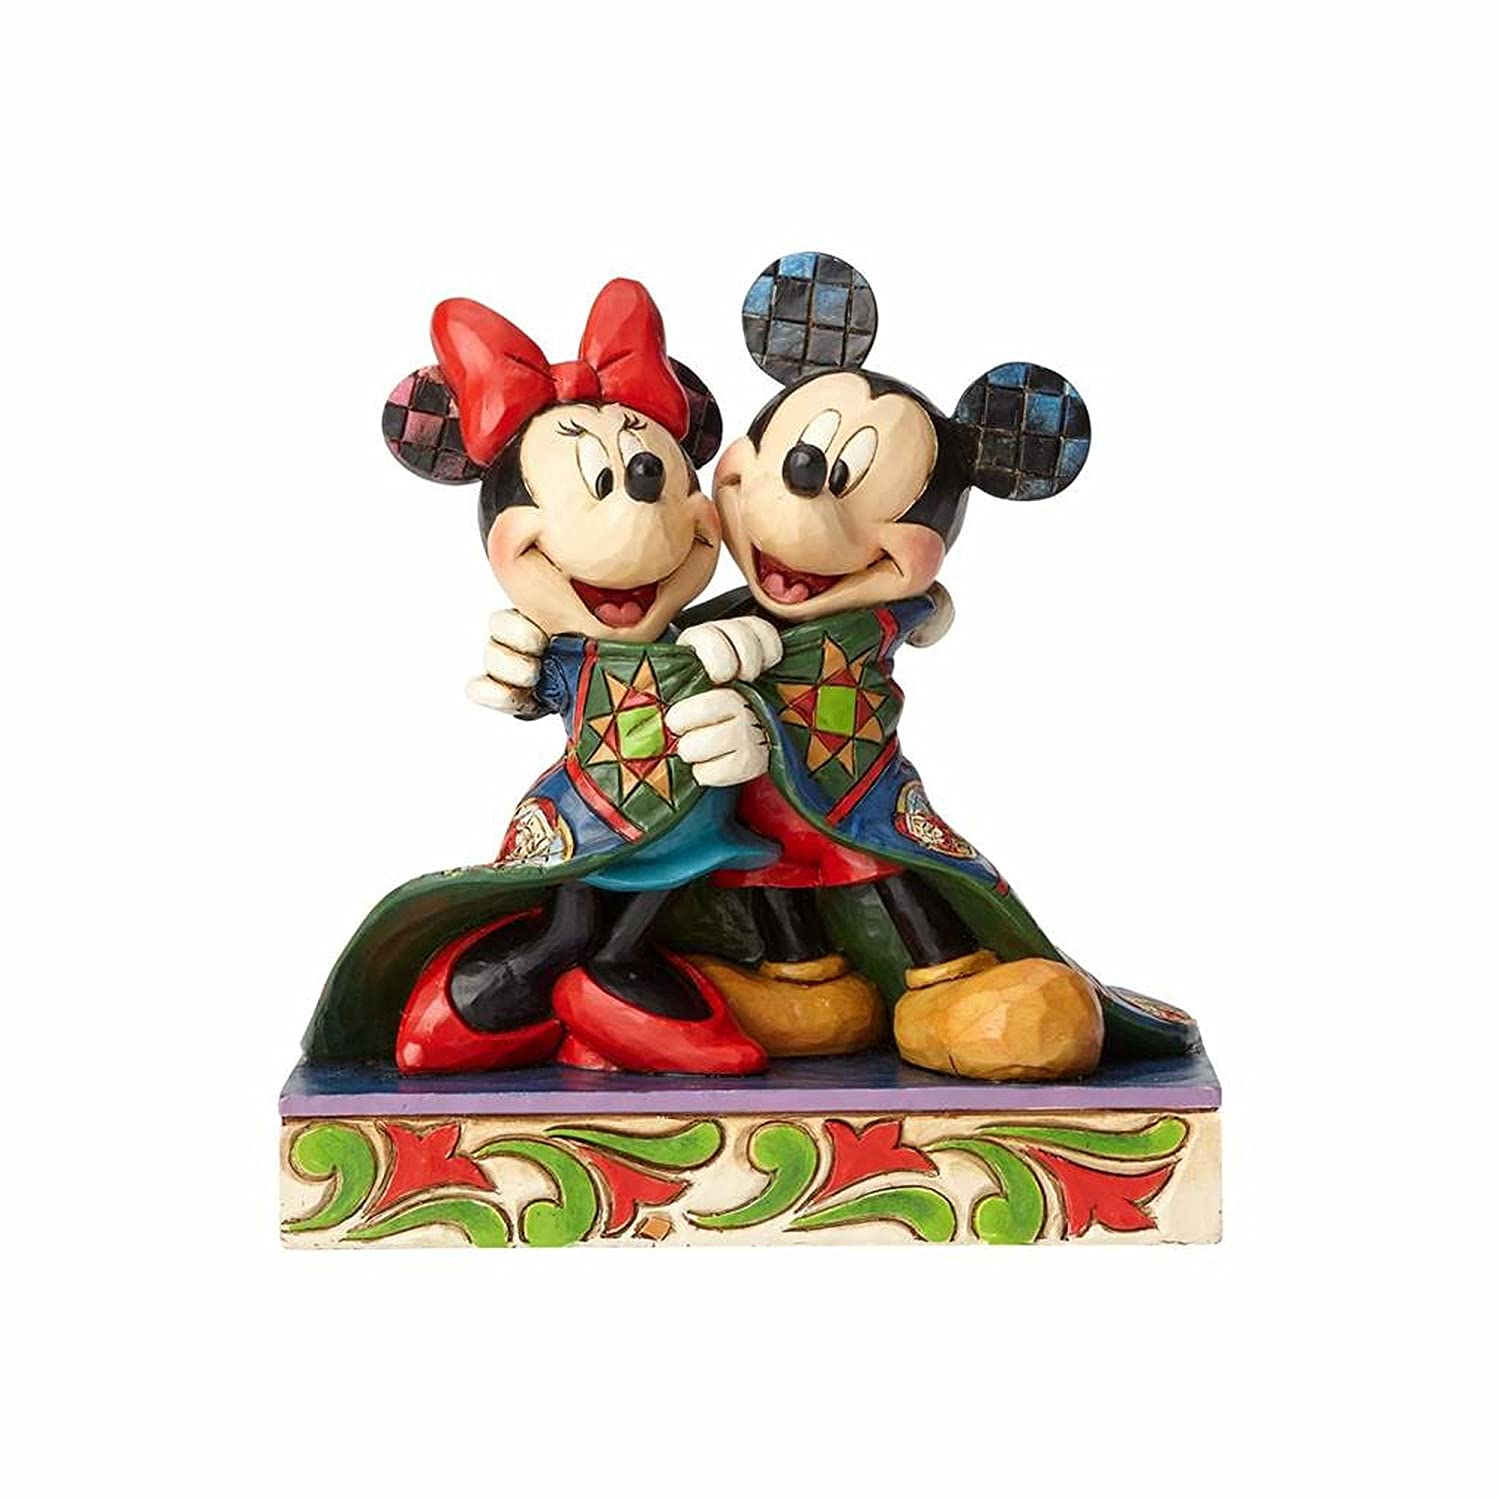 7f21460c2 Disney Traditions Warm Wishes Mickey and Minnie Mouse Figurine ...